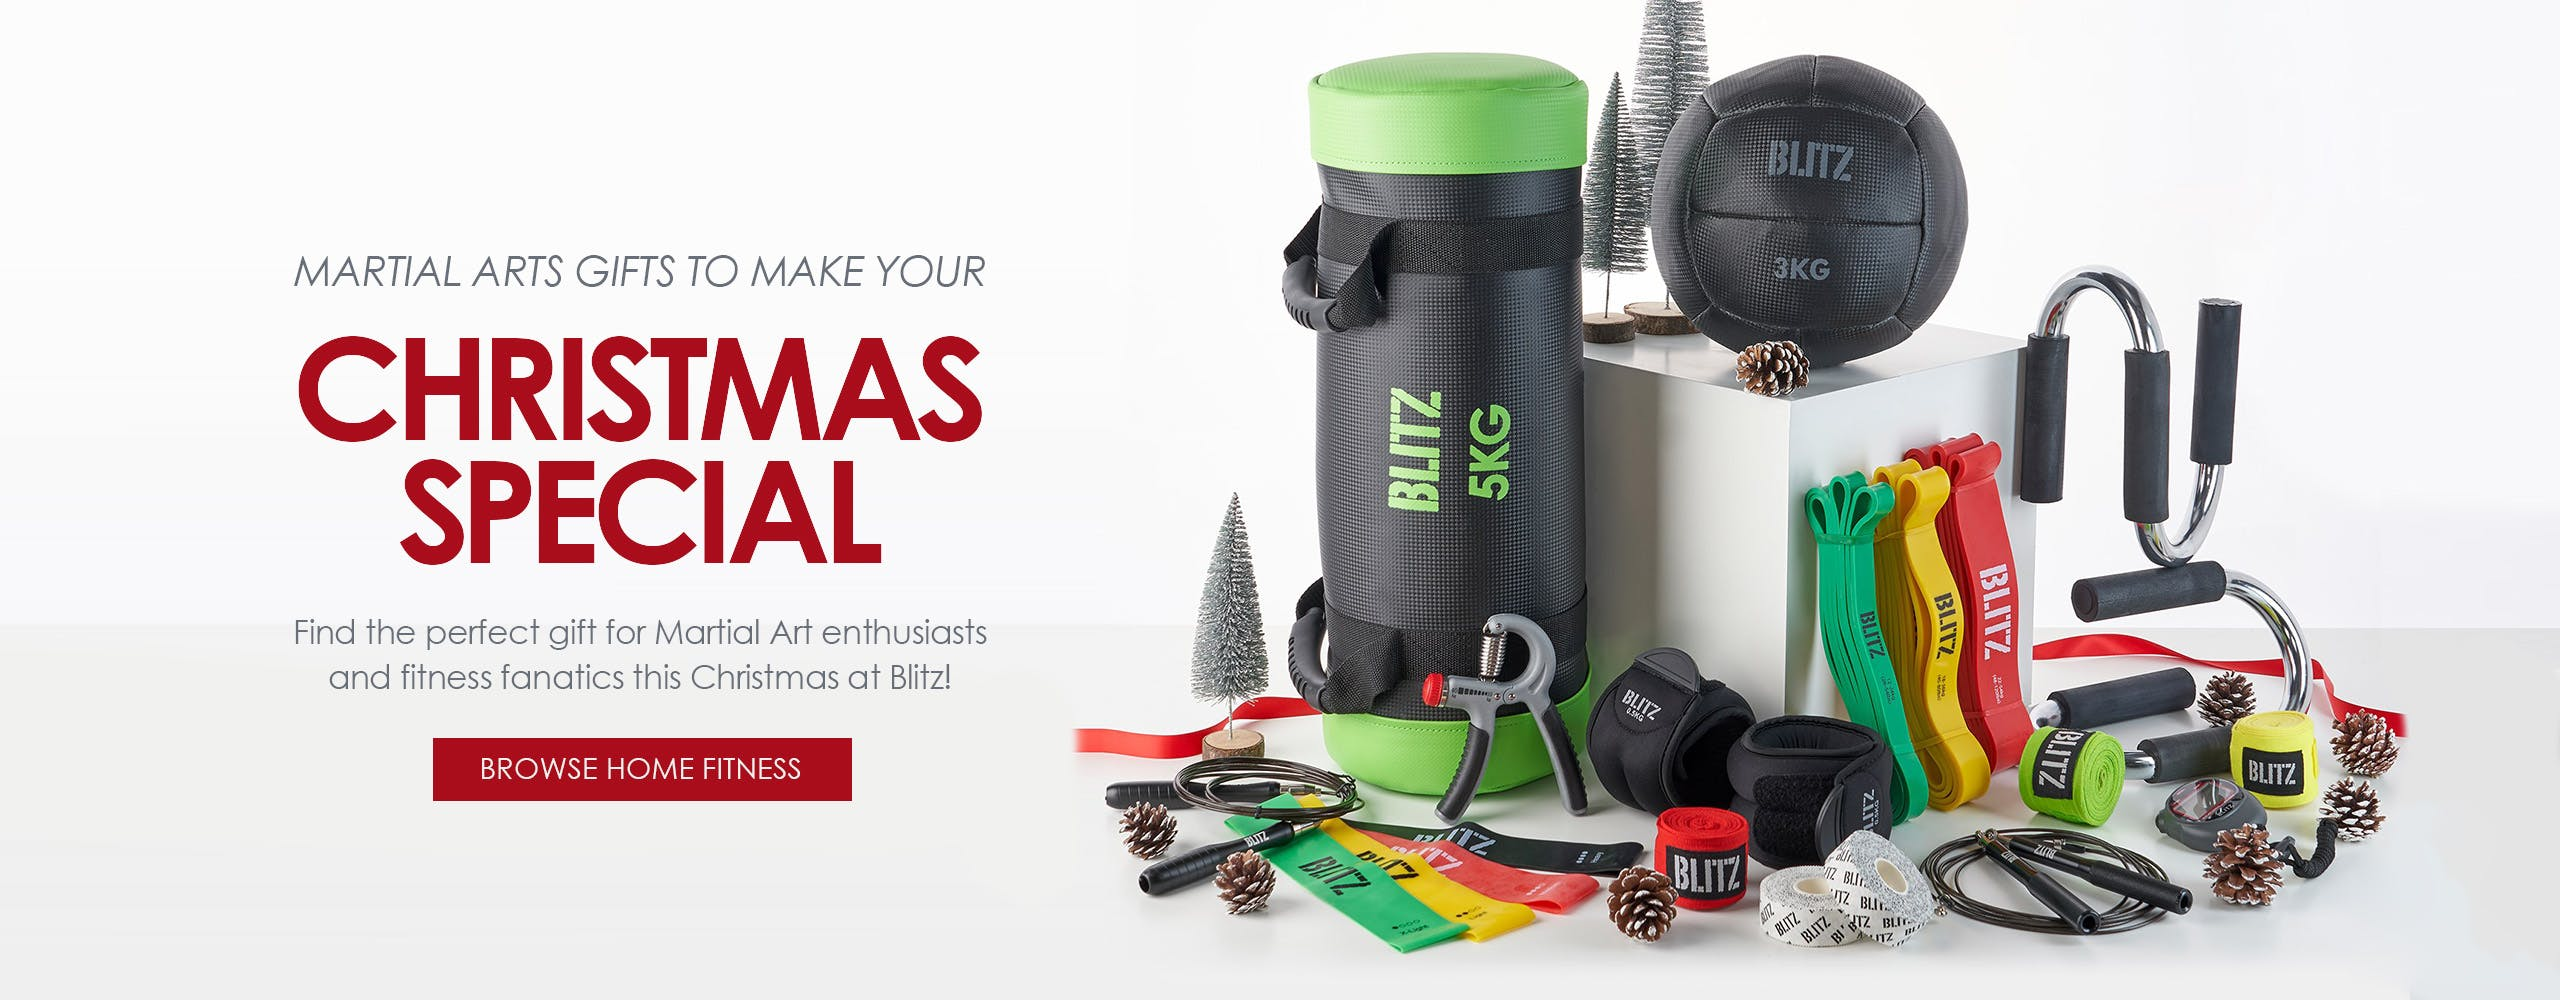 Find the perfect gift for Martial Art enthusiasts and fitness fanatics this Christmas at Blitz!